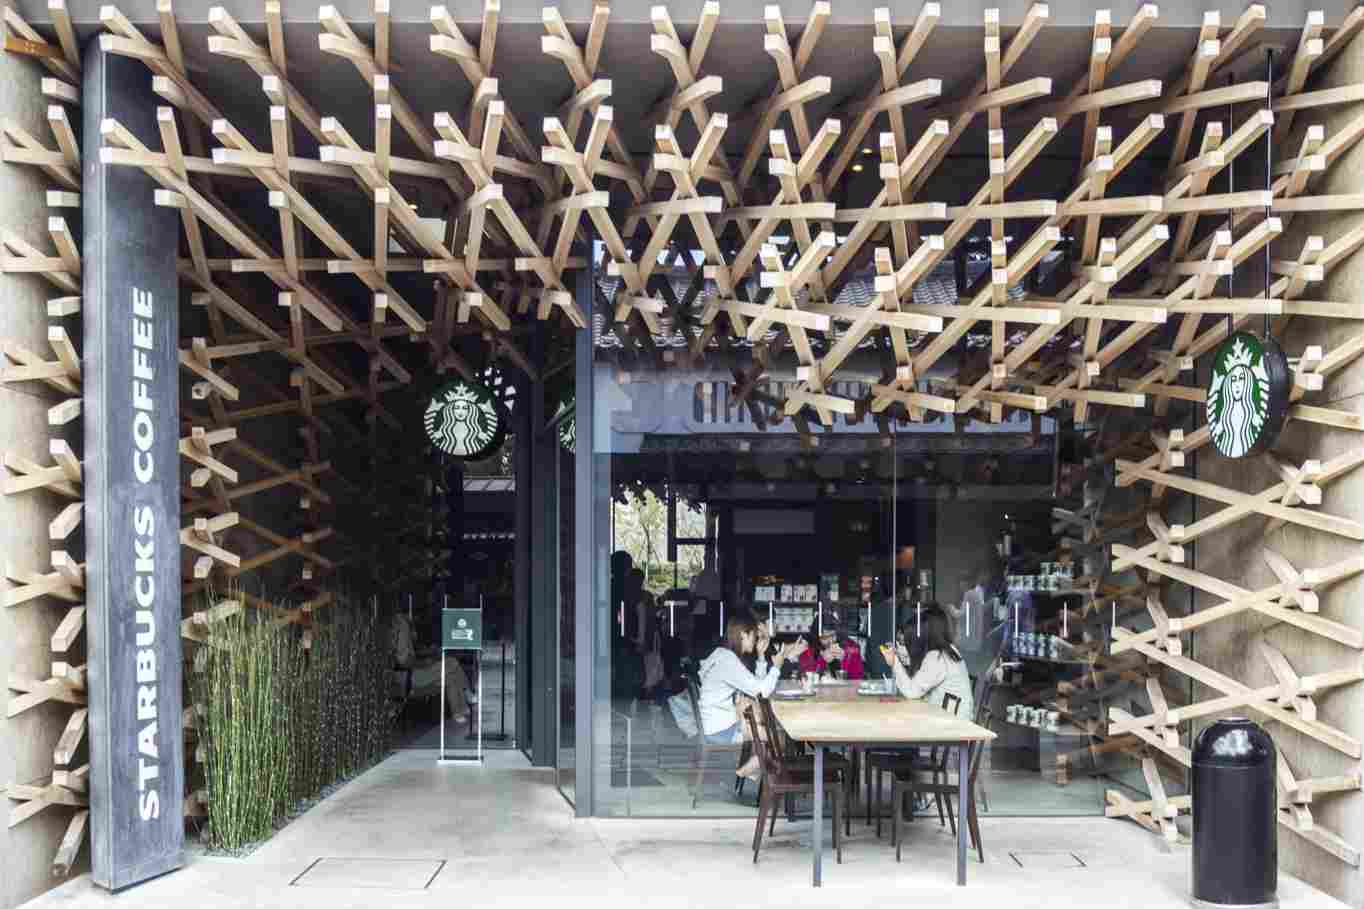 Starbucks-Coffee-Shop-Fukuoka-Japan